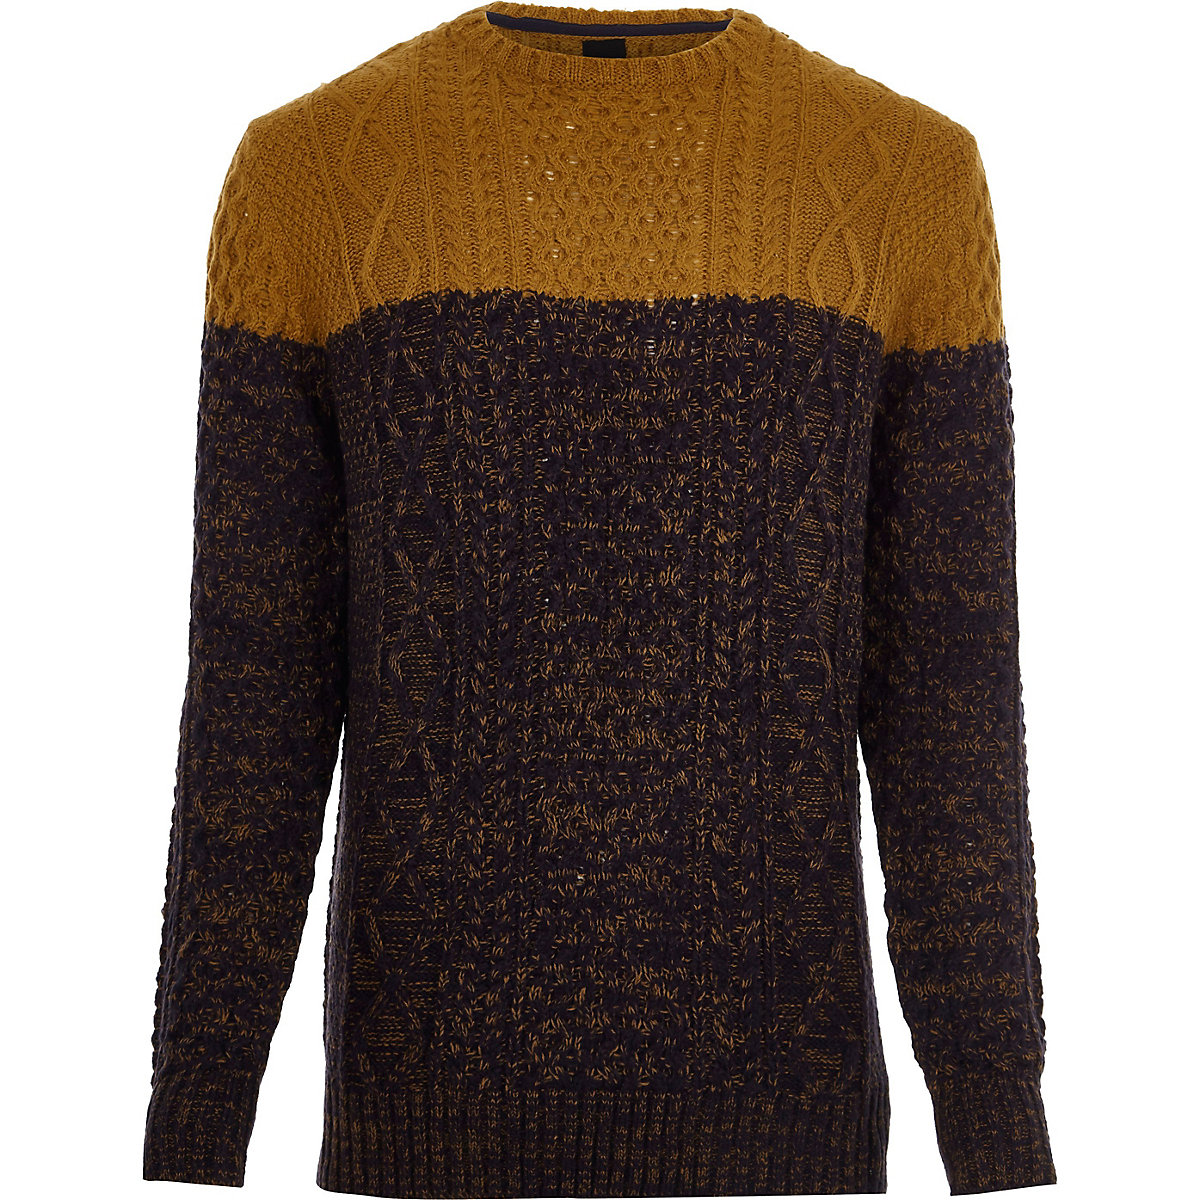 Big and Tall mustard block cable knit jumper